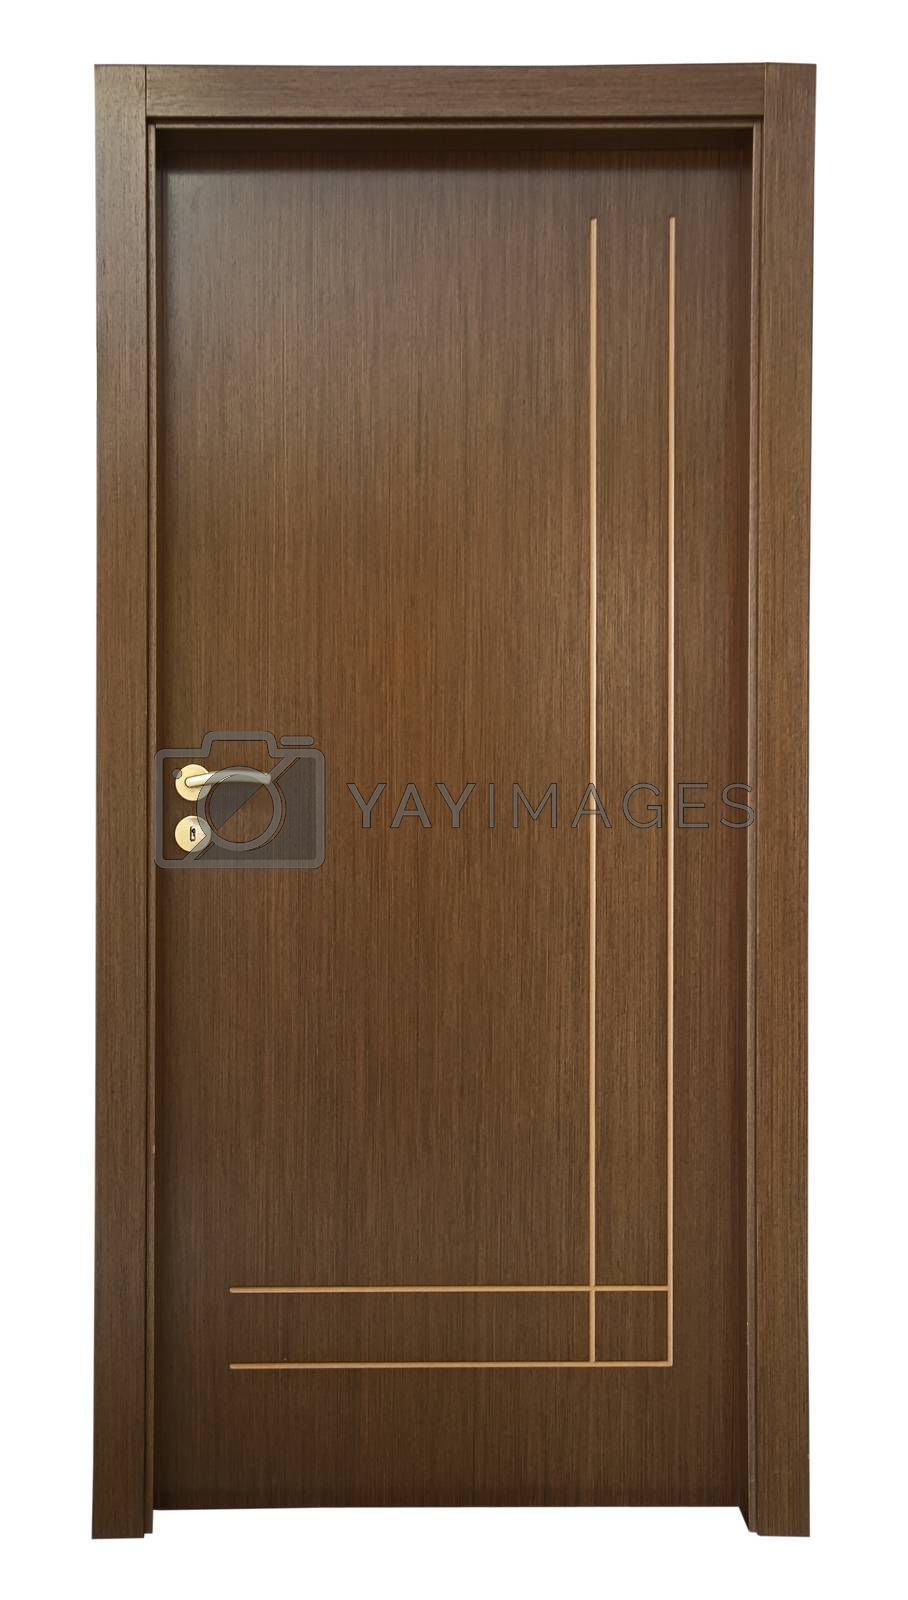 Wooden new classic door white isolated.